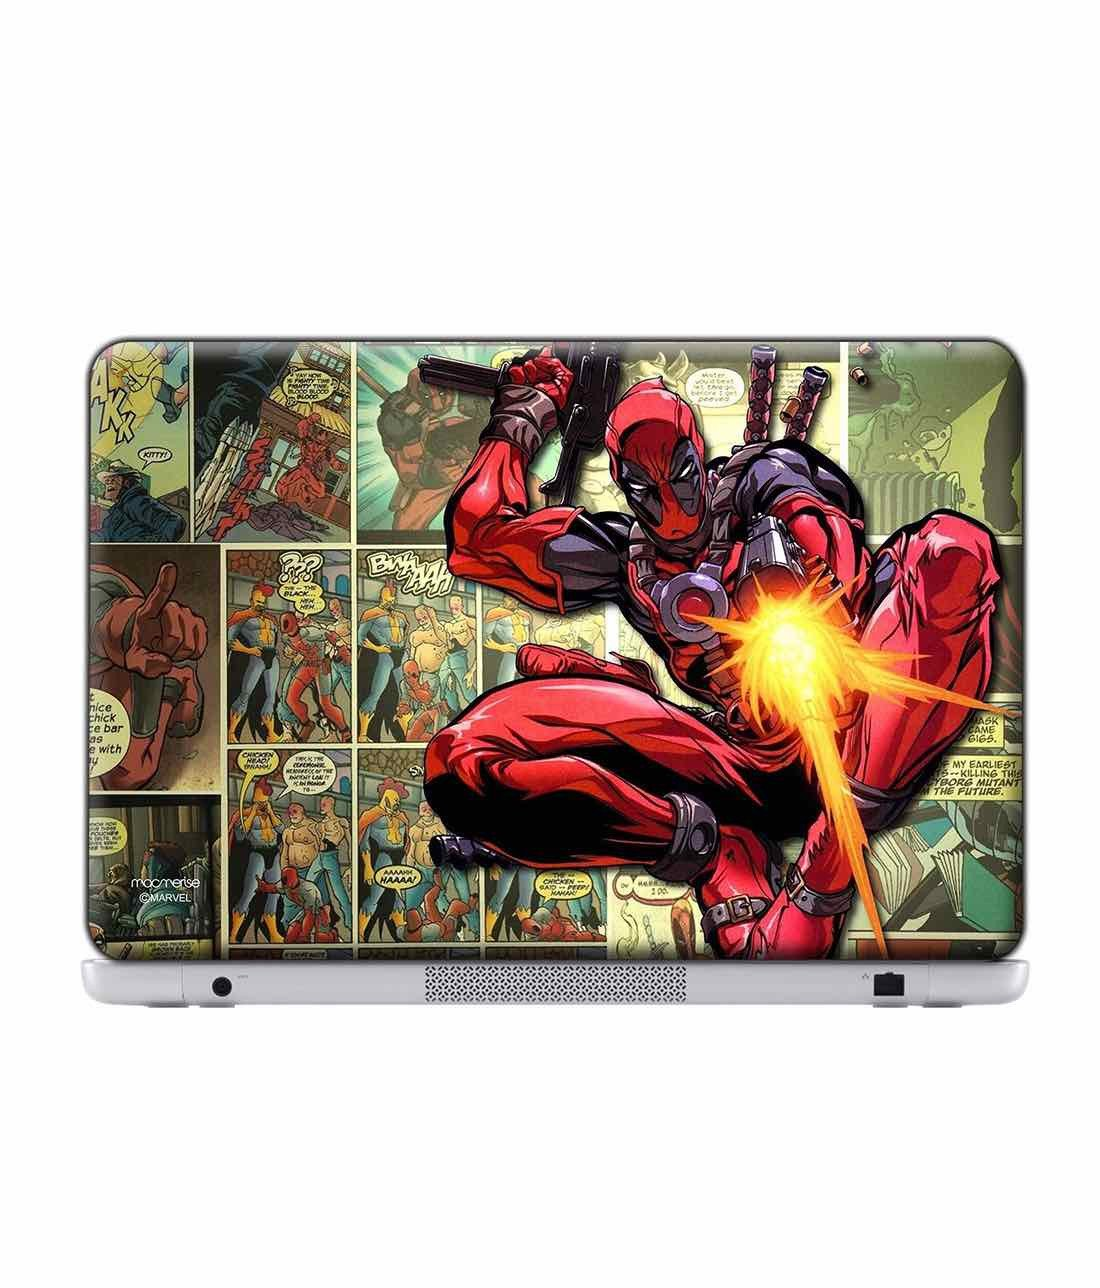 Deadpool takes Aim Laptop Skin by Macmerise